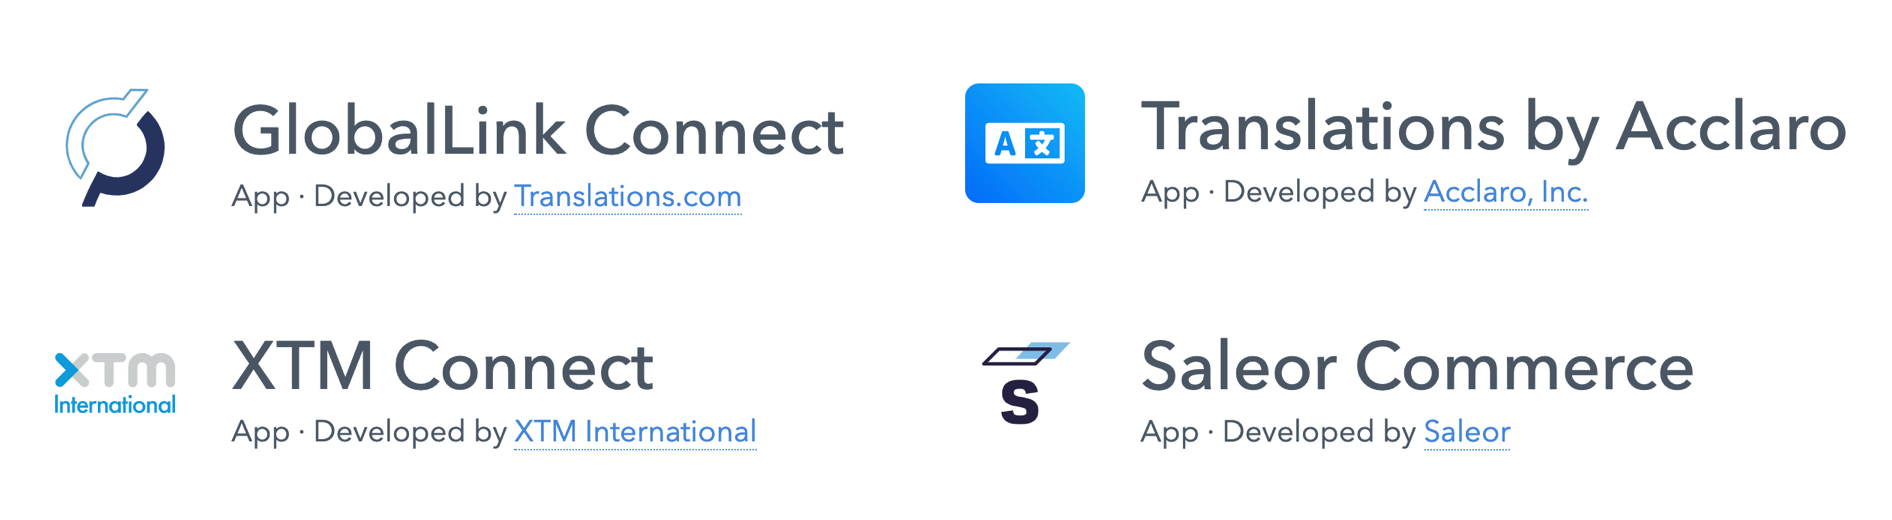 A list of four new apps in the Contenful app marketplace: GlobalLink Connect, XTM Conncet, Saleor Commerce and Translations by Acclaro